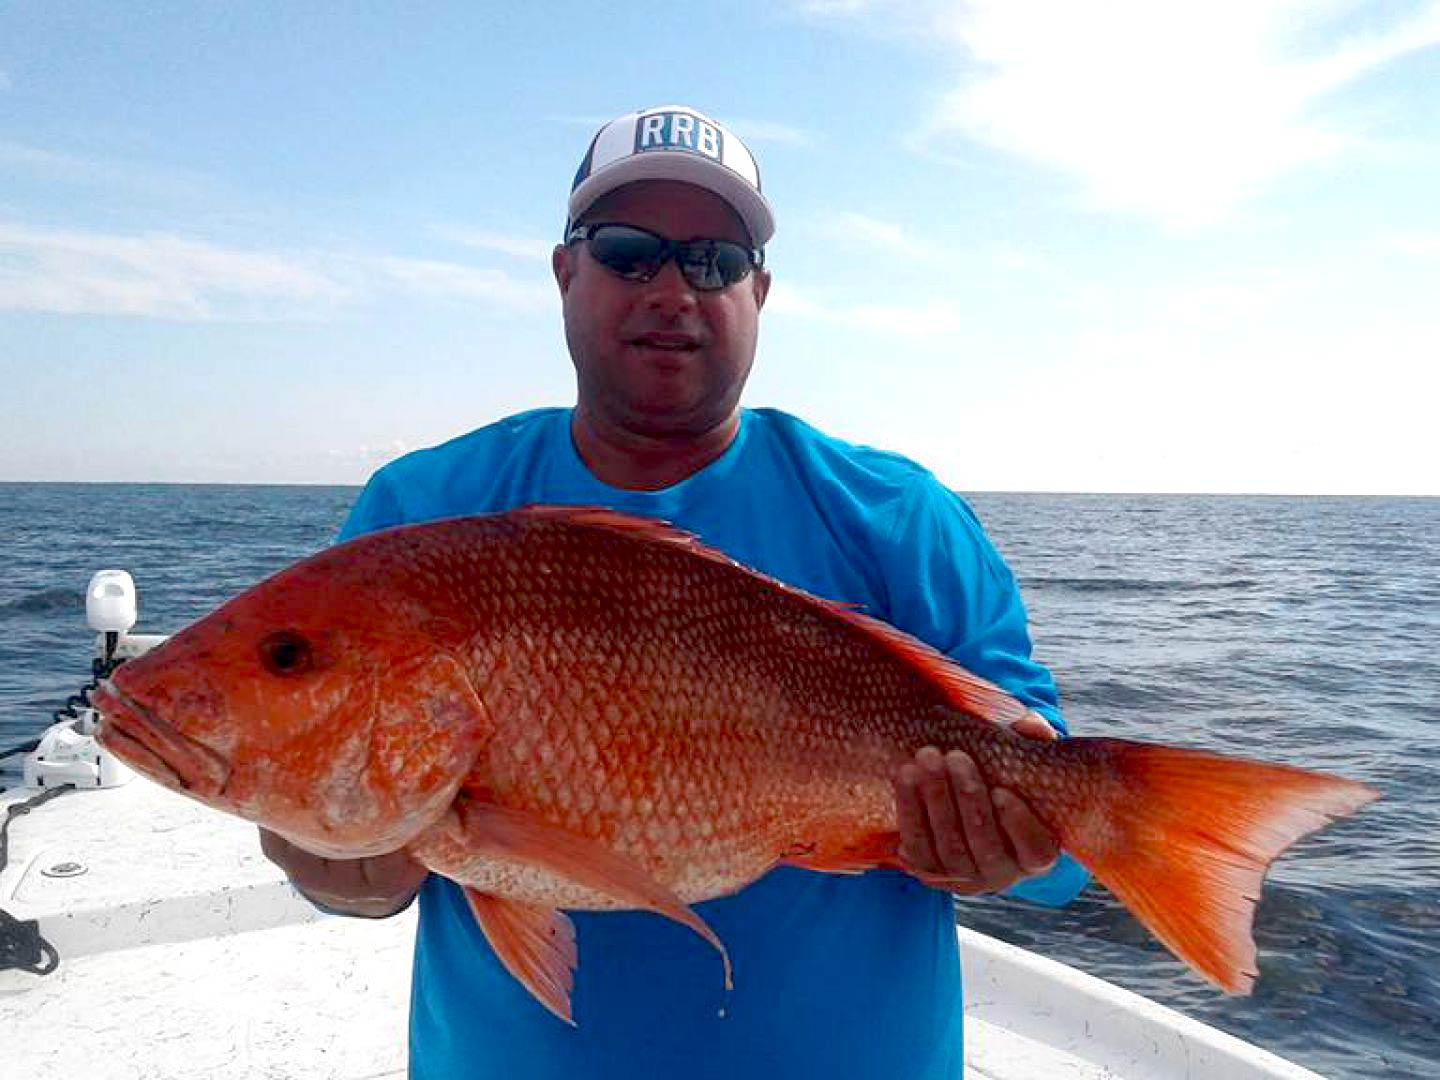 A man holding a Snapper on a boat in Florida